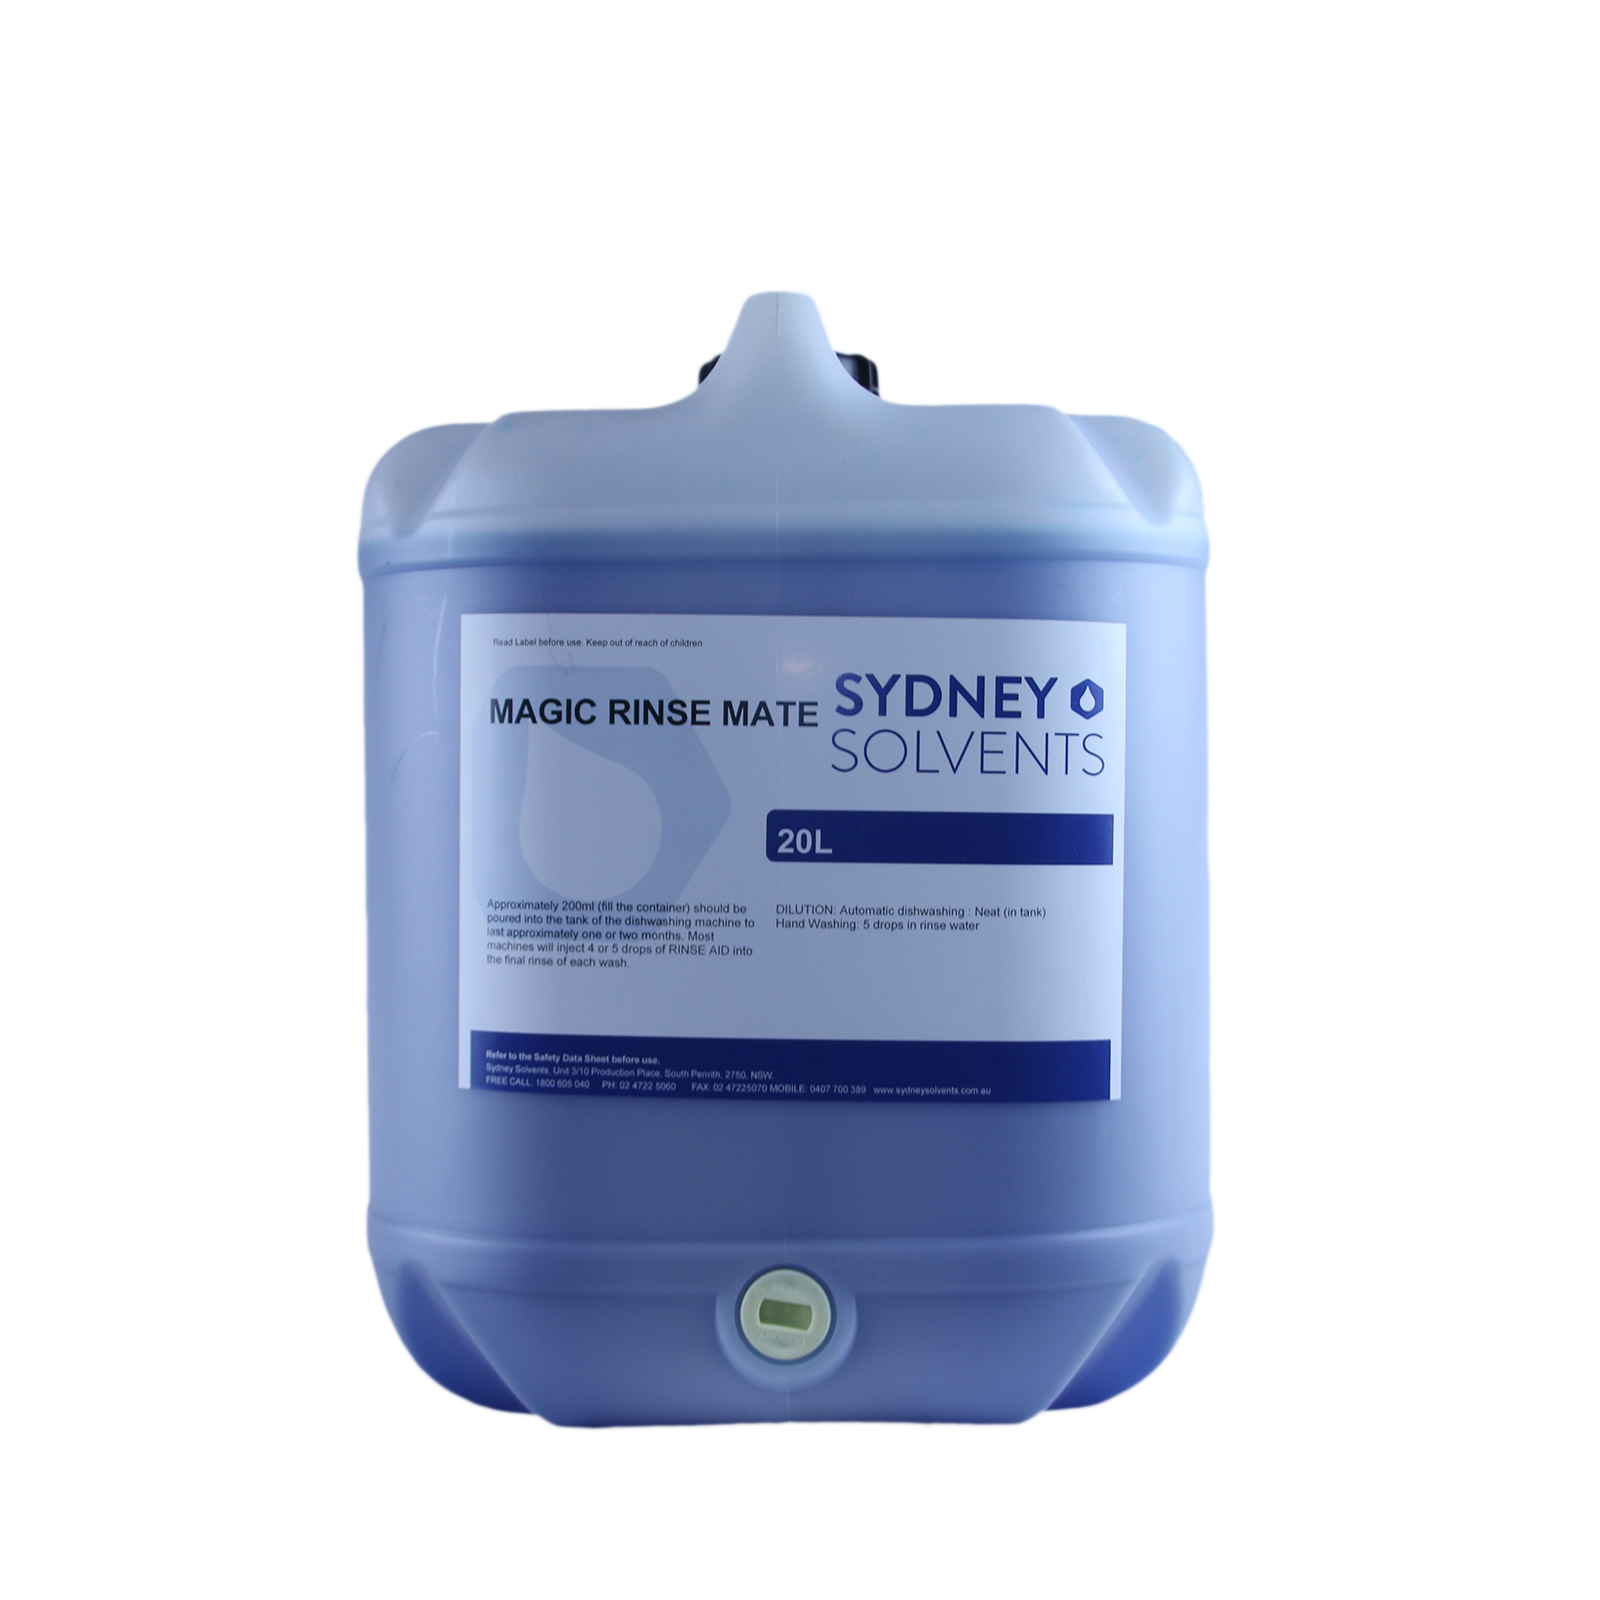 Magic Rinse Mate 20 Litre Sydney Solvents